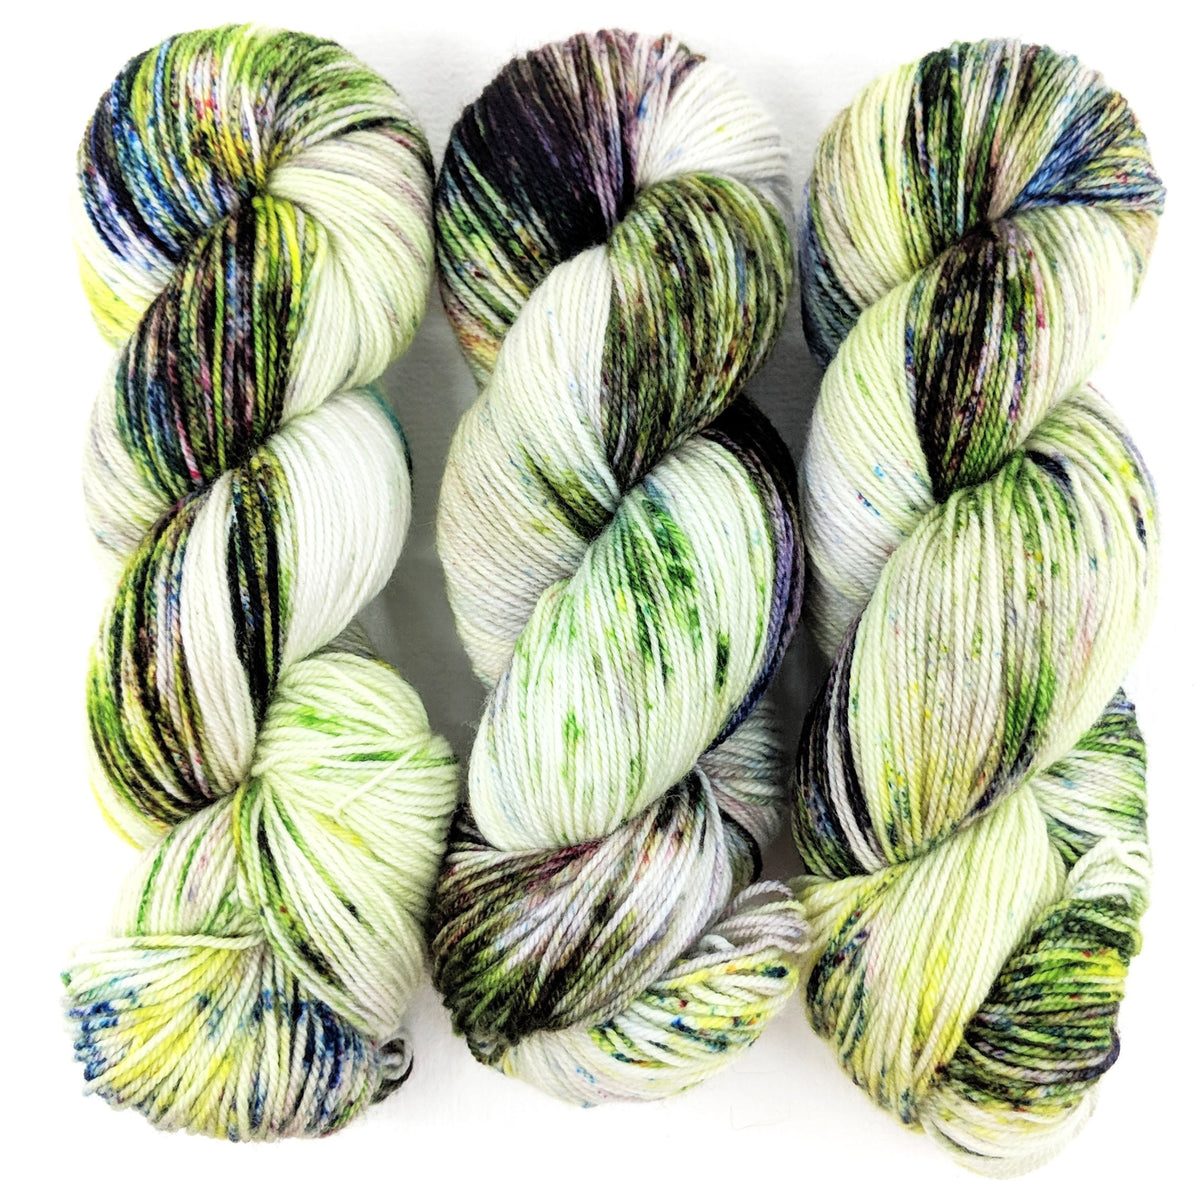 Monet - The Water Lily Pond - Bunny Hug Sport - Dyed Stock